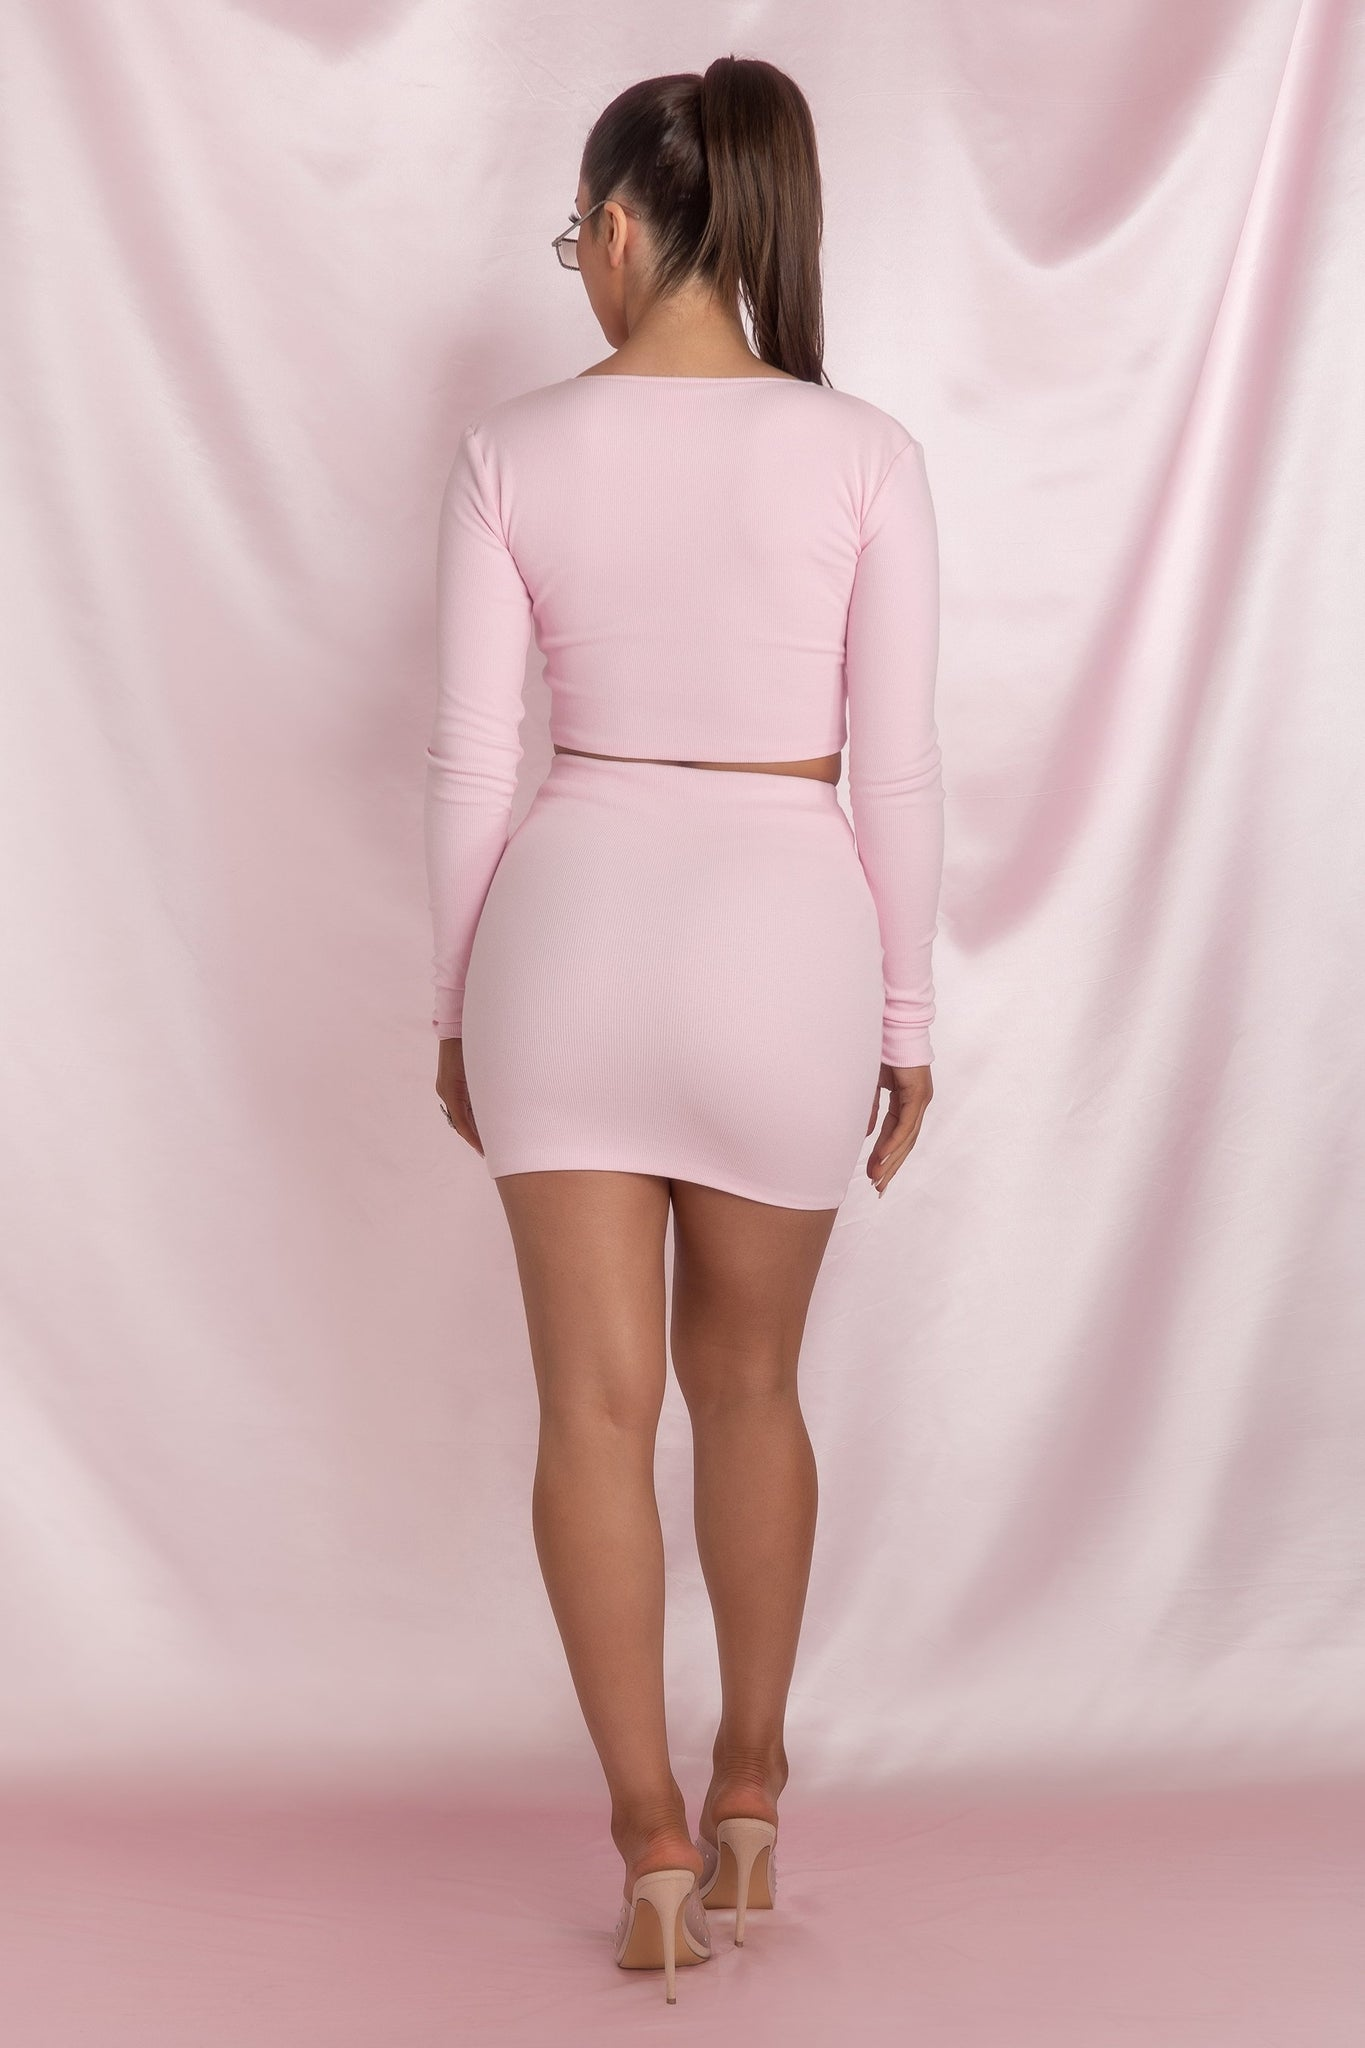 Brittney 'Feisty' Double Zip Long Sleeve Crop Top  - Pink - MESHKI